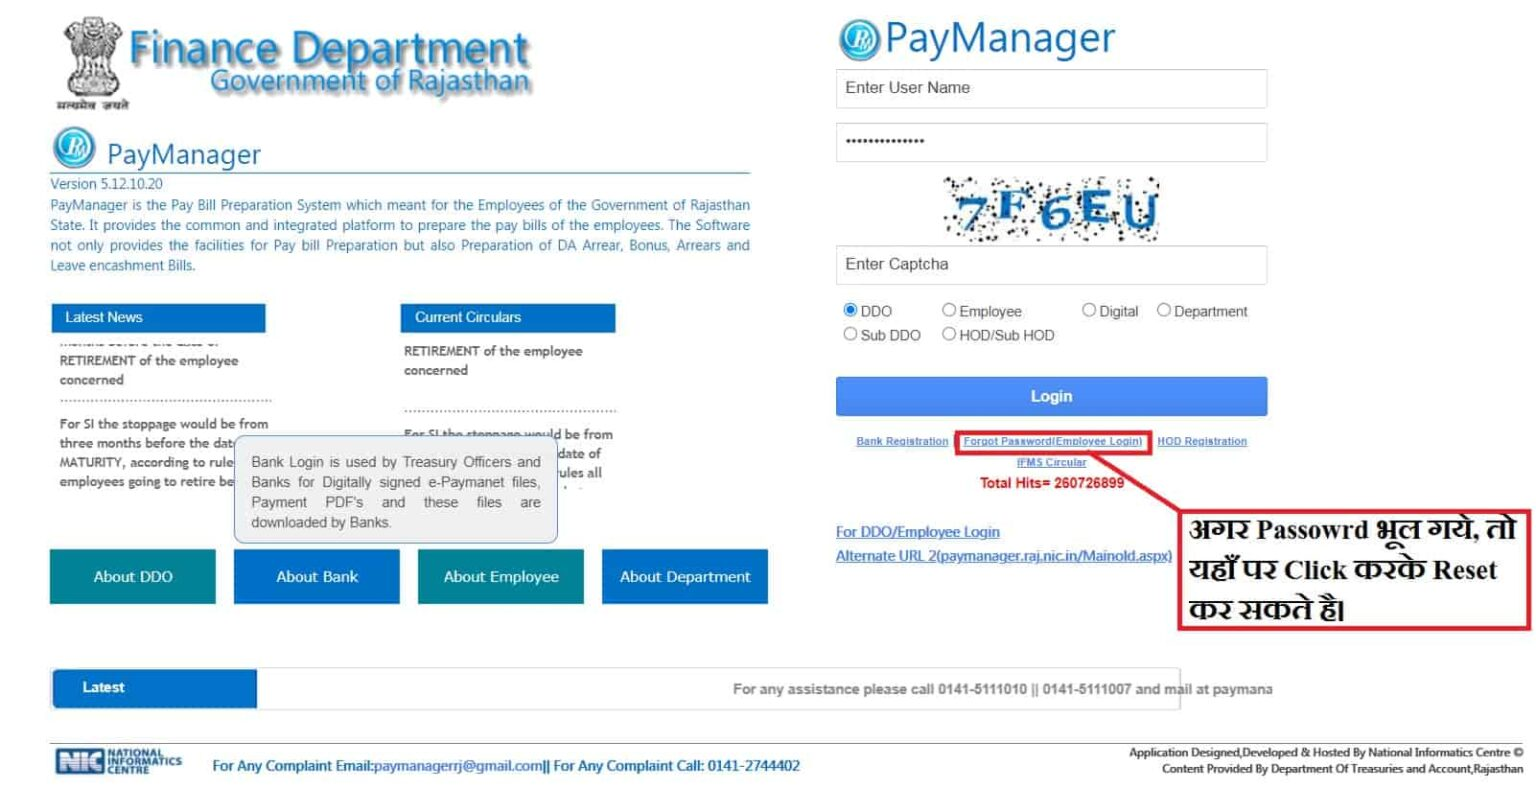 Paymanager Forget Password Rest